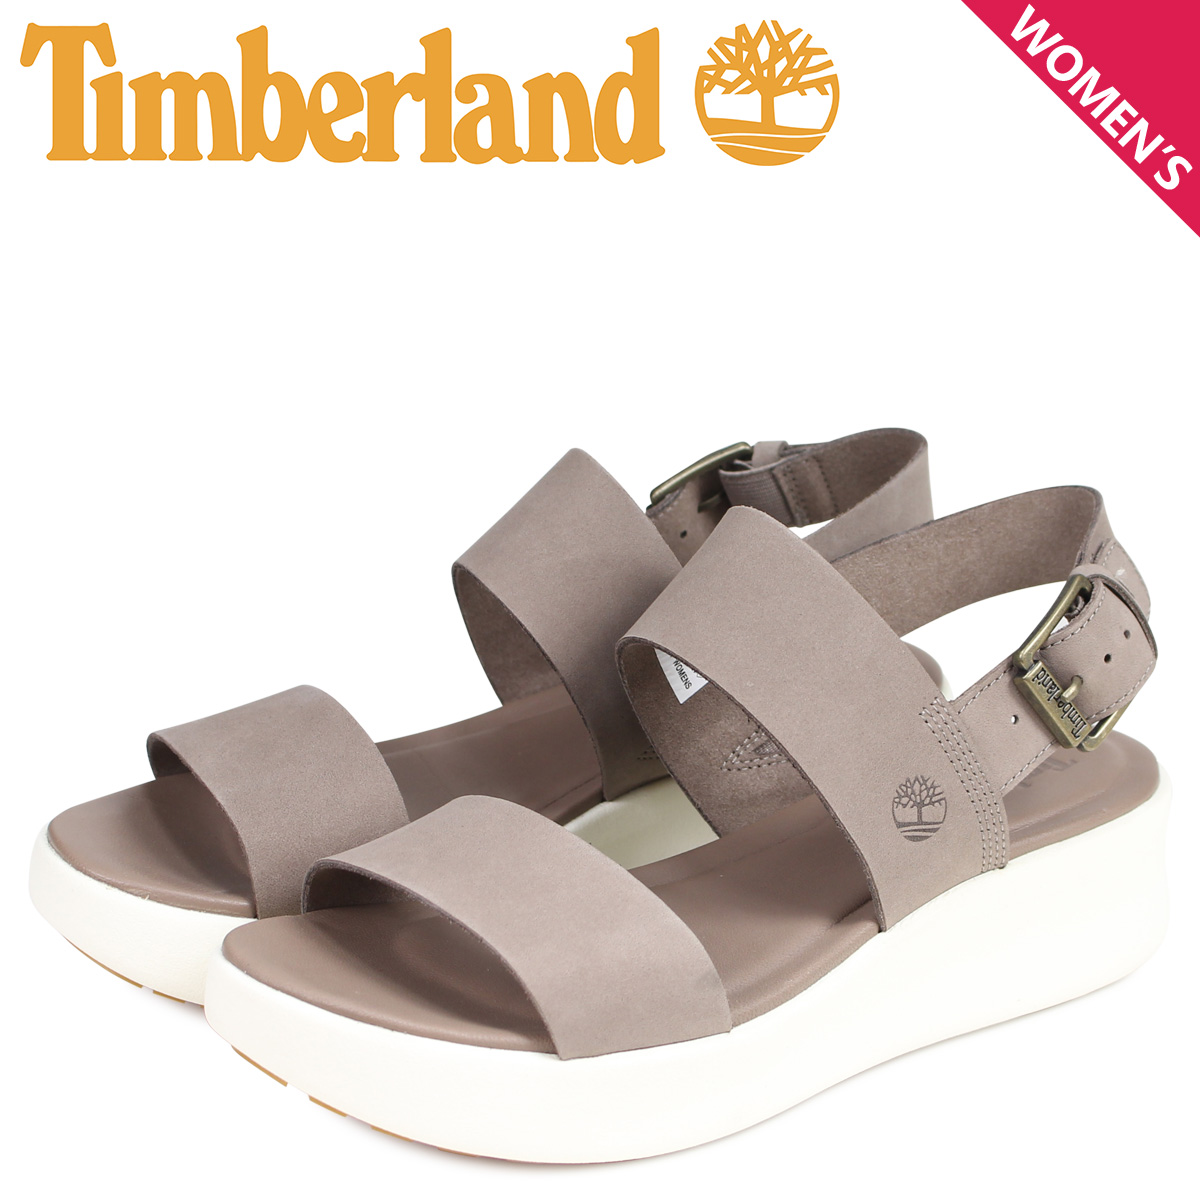 Timberland Timberland sandals platform sandals Lady's WOMENS LOS ANGELES WIND SANDAL light brown A1XW6929